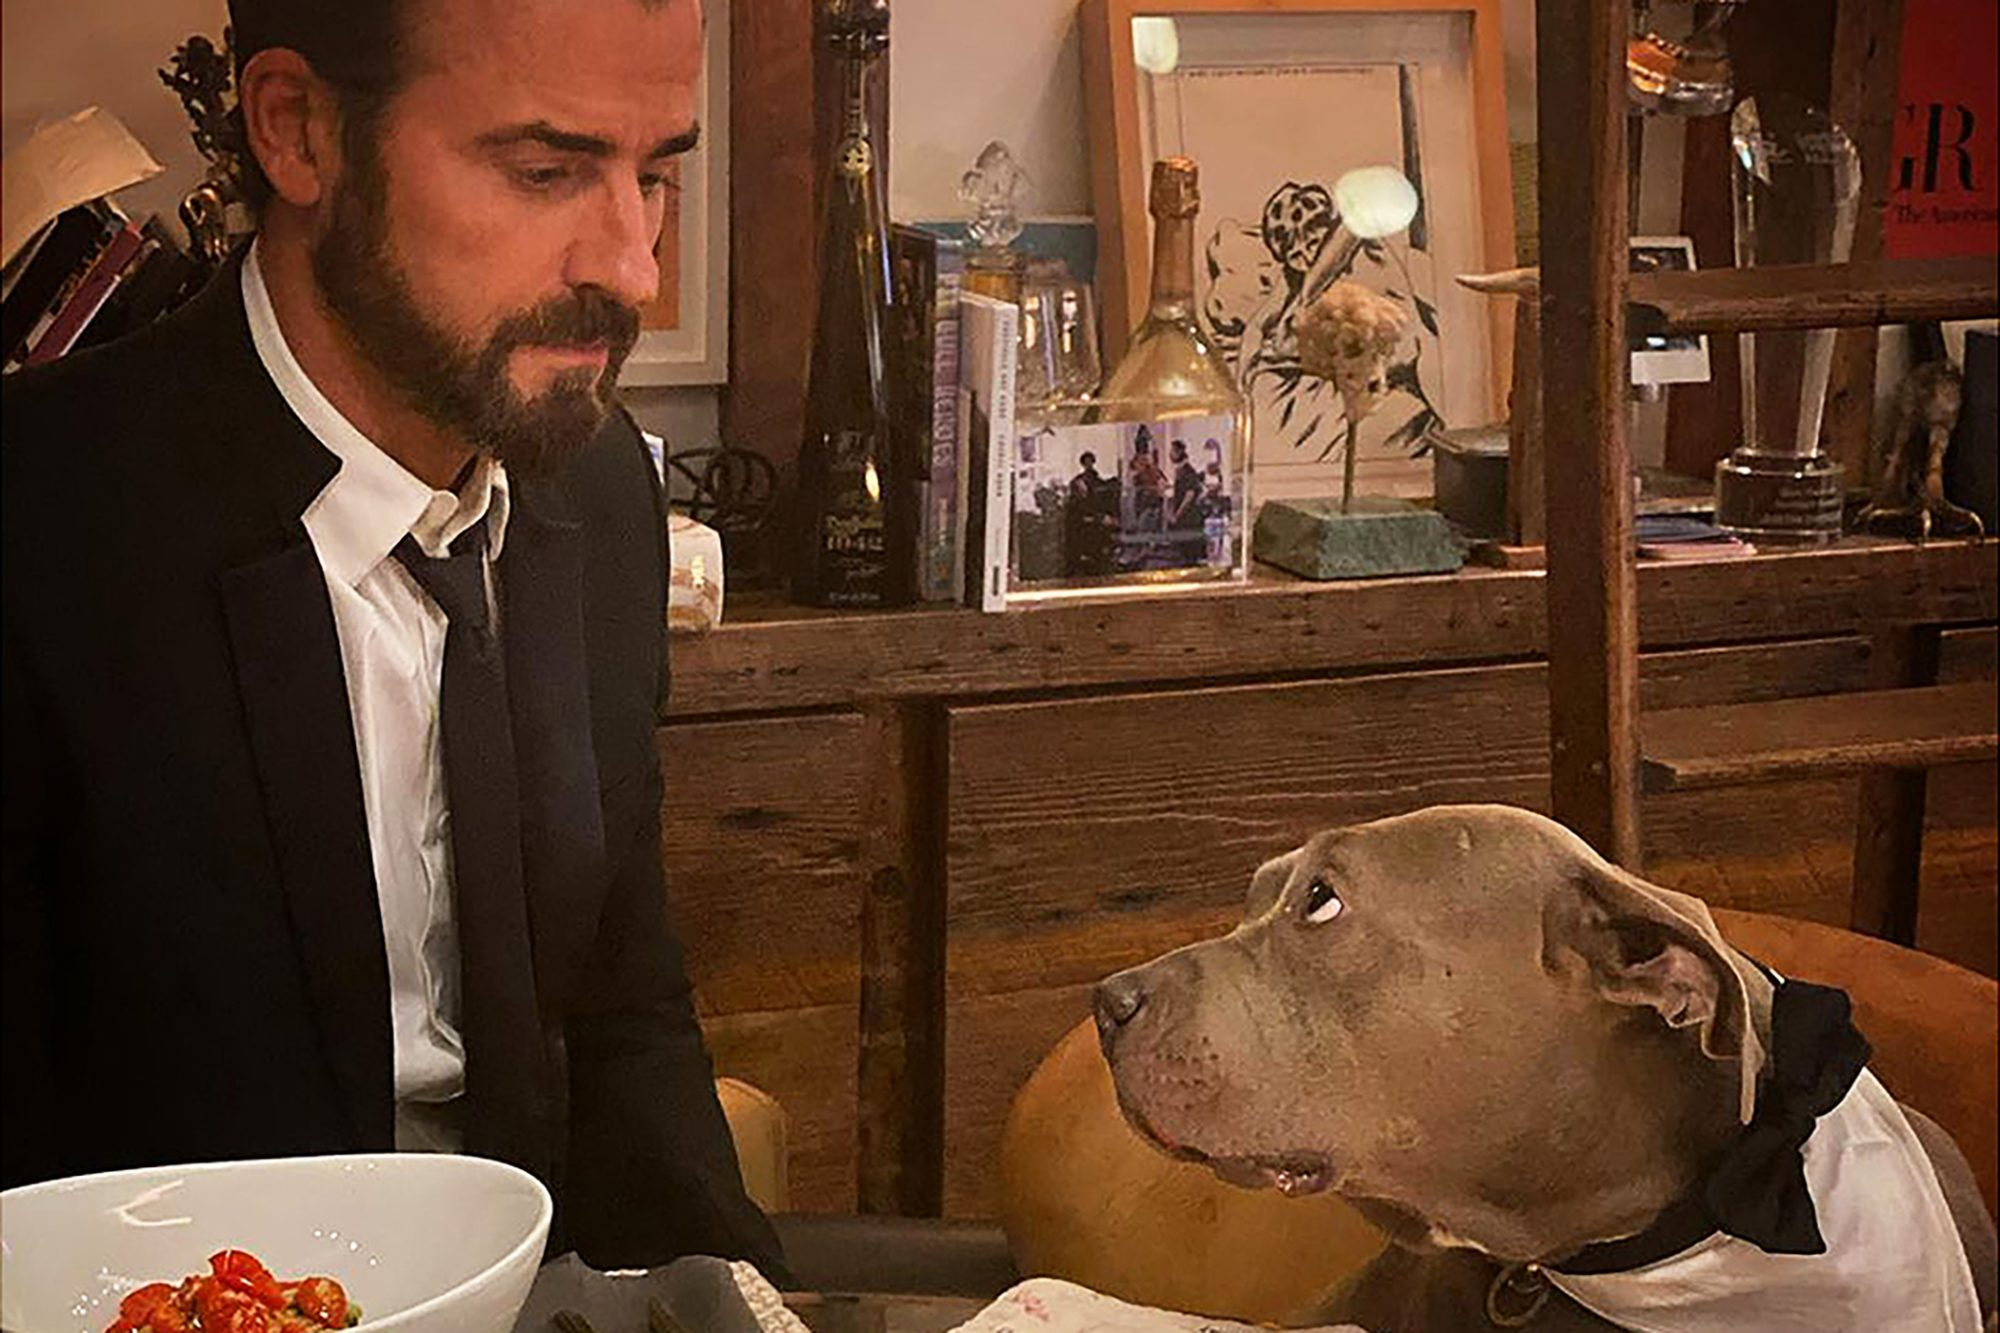 Justin Theroux with his dog at the dinner table